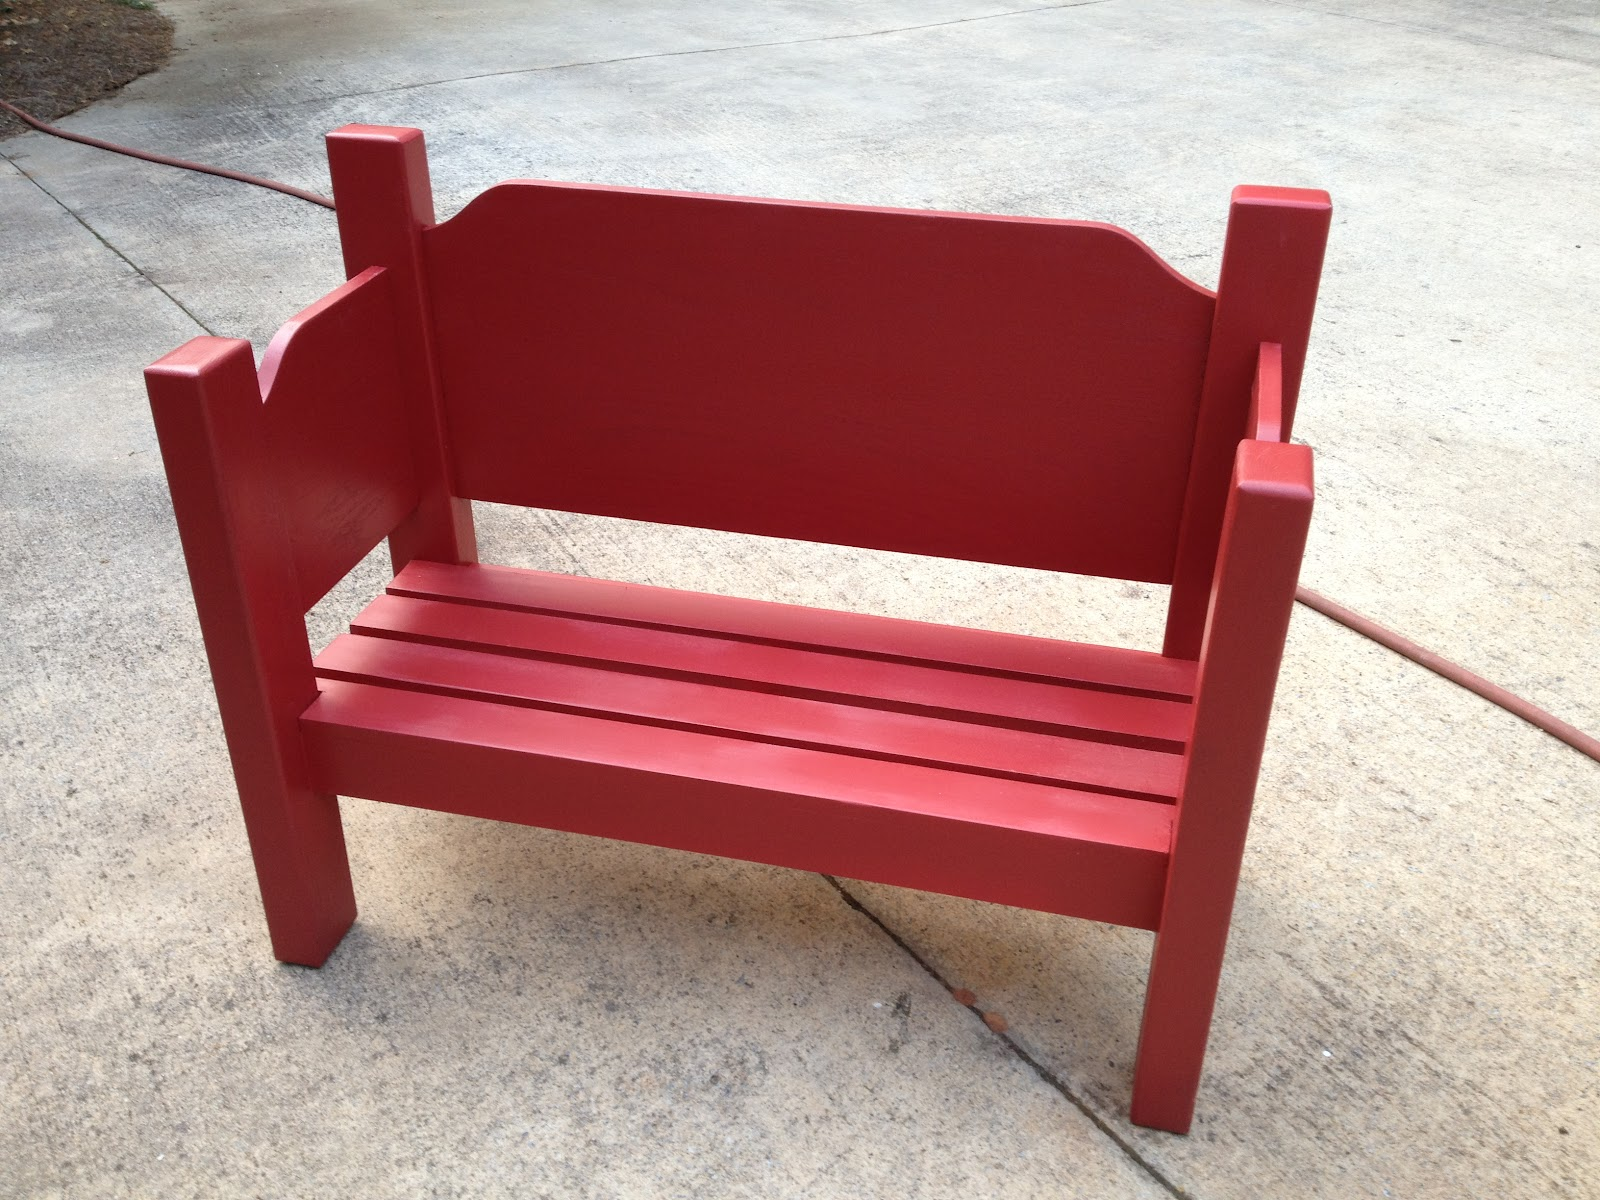 Sensible Redesign Childs Little Red Bench